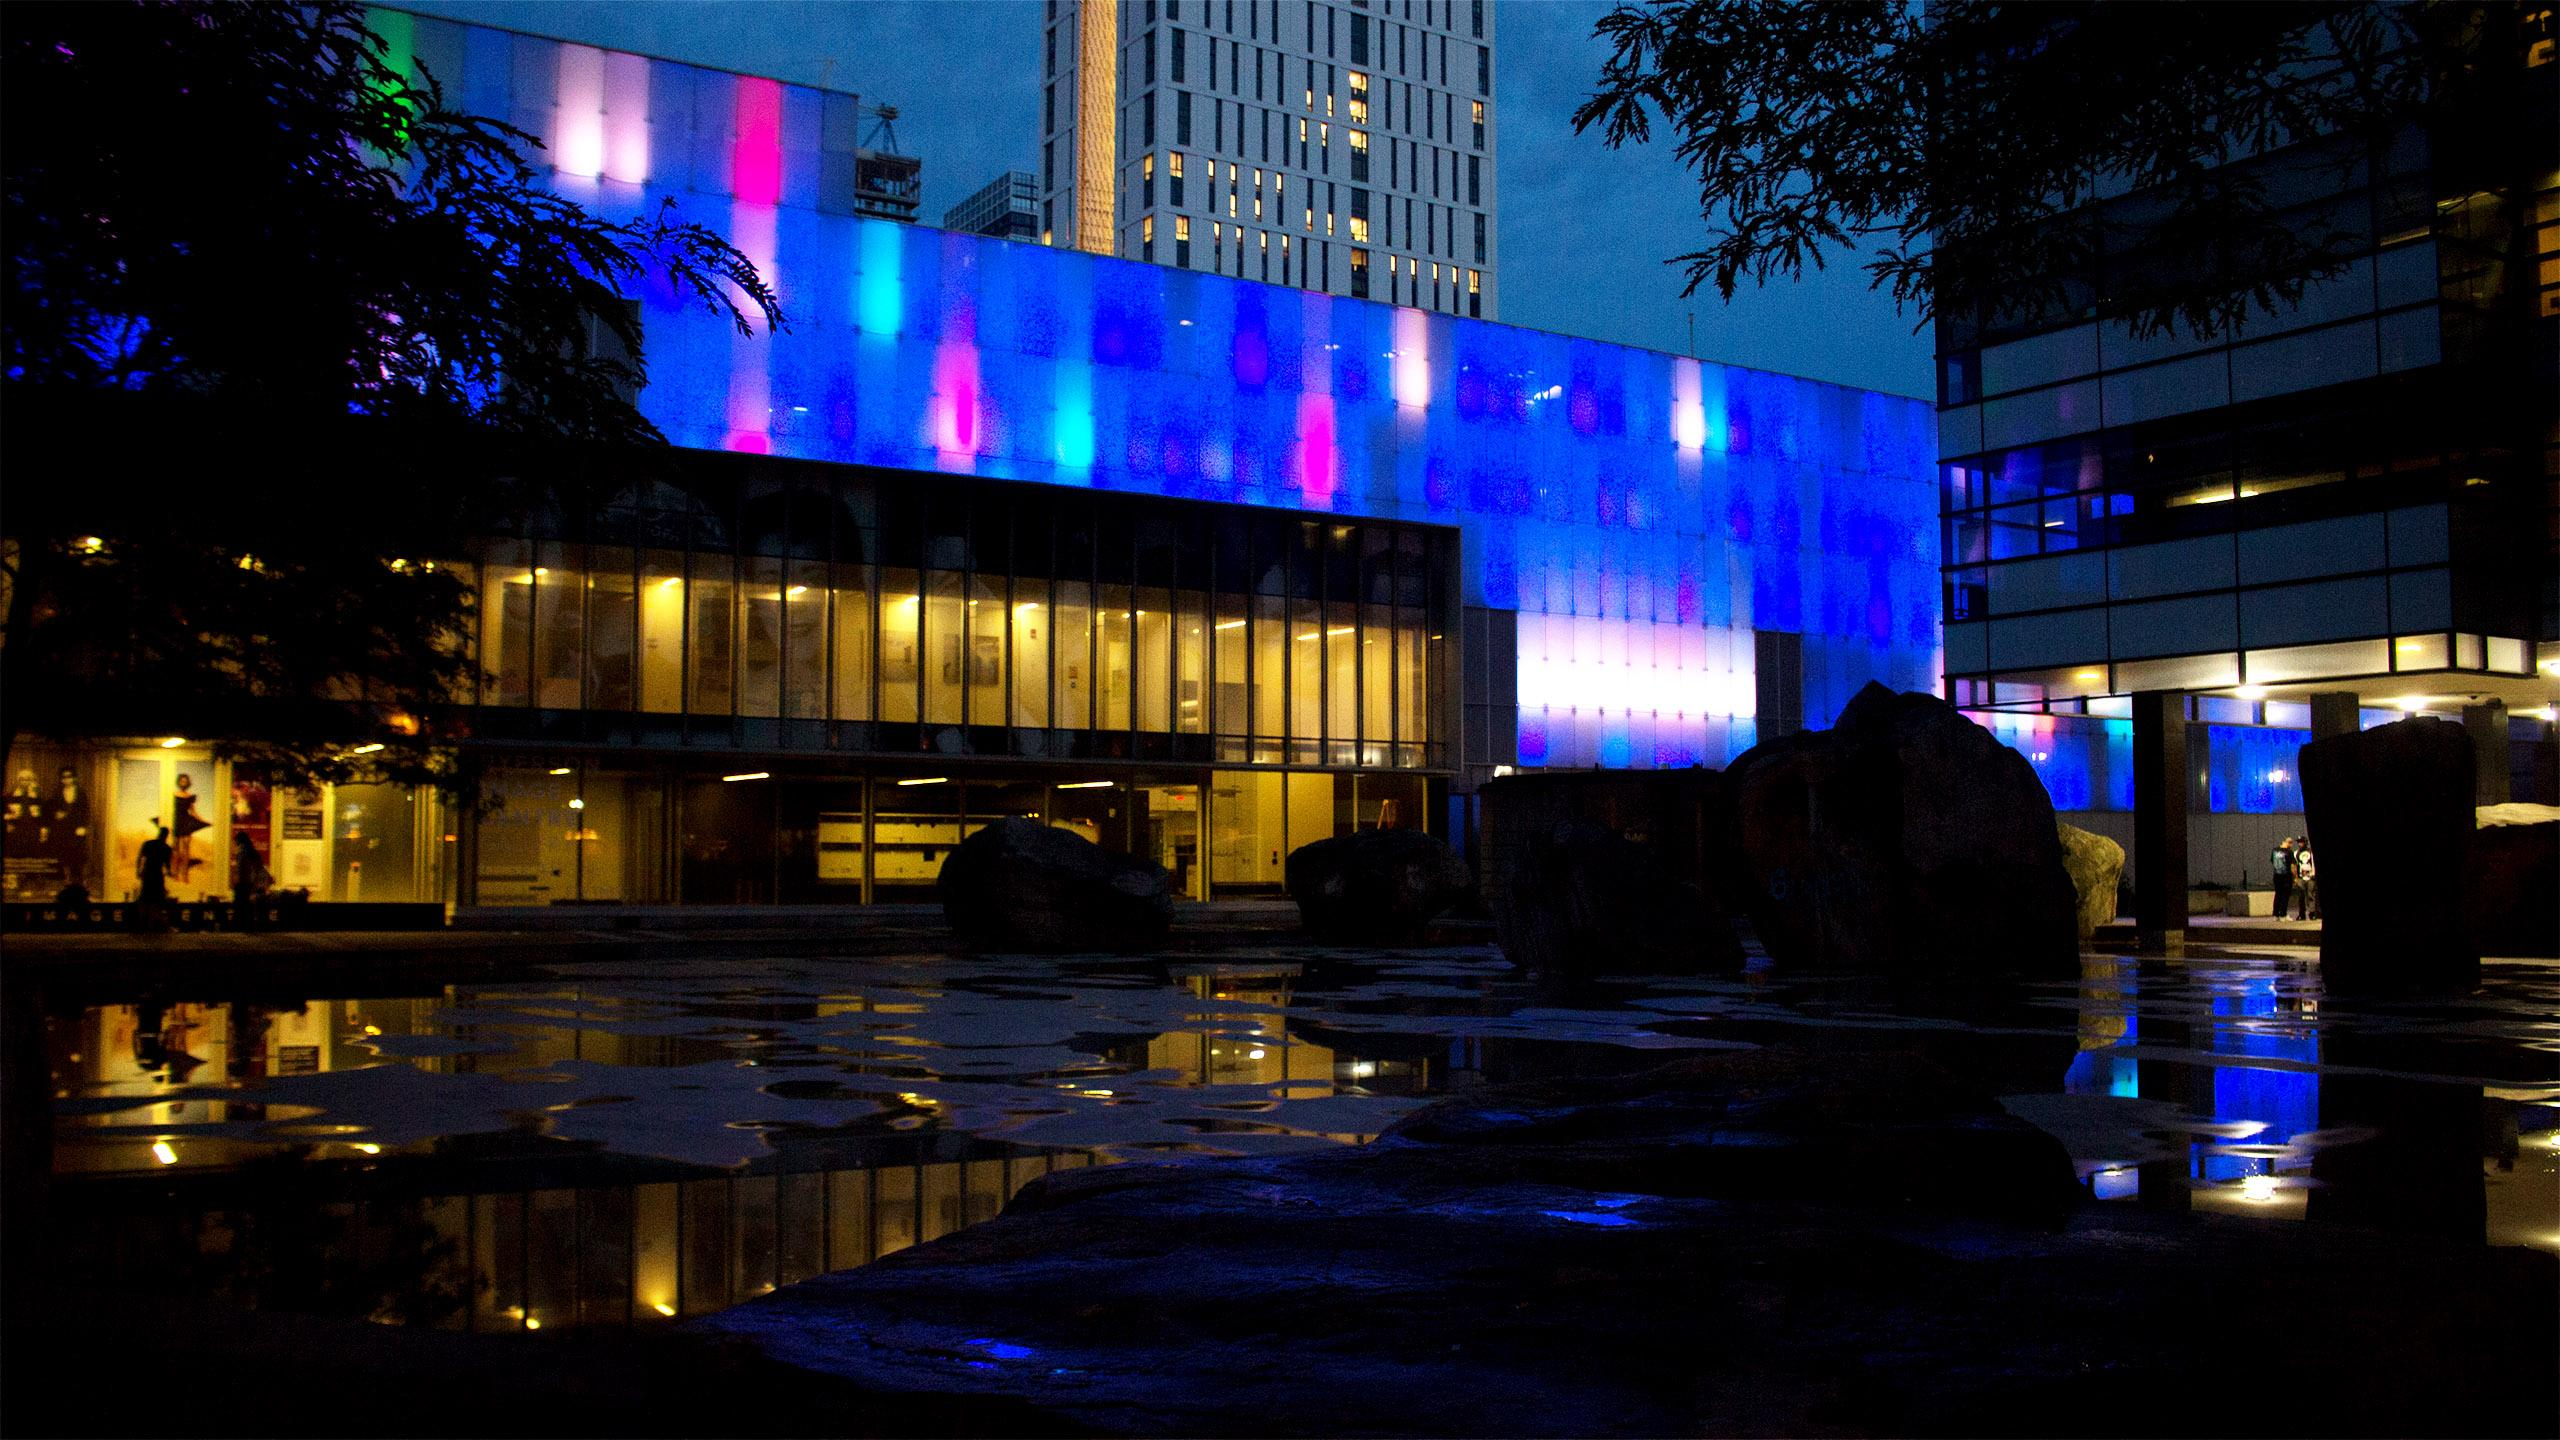 Picture of the IMA building at Ryerson University at night